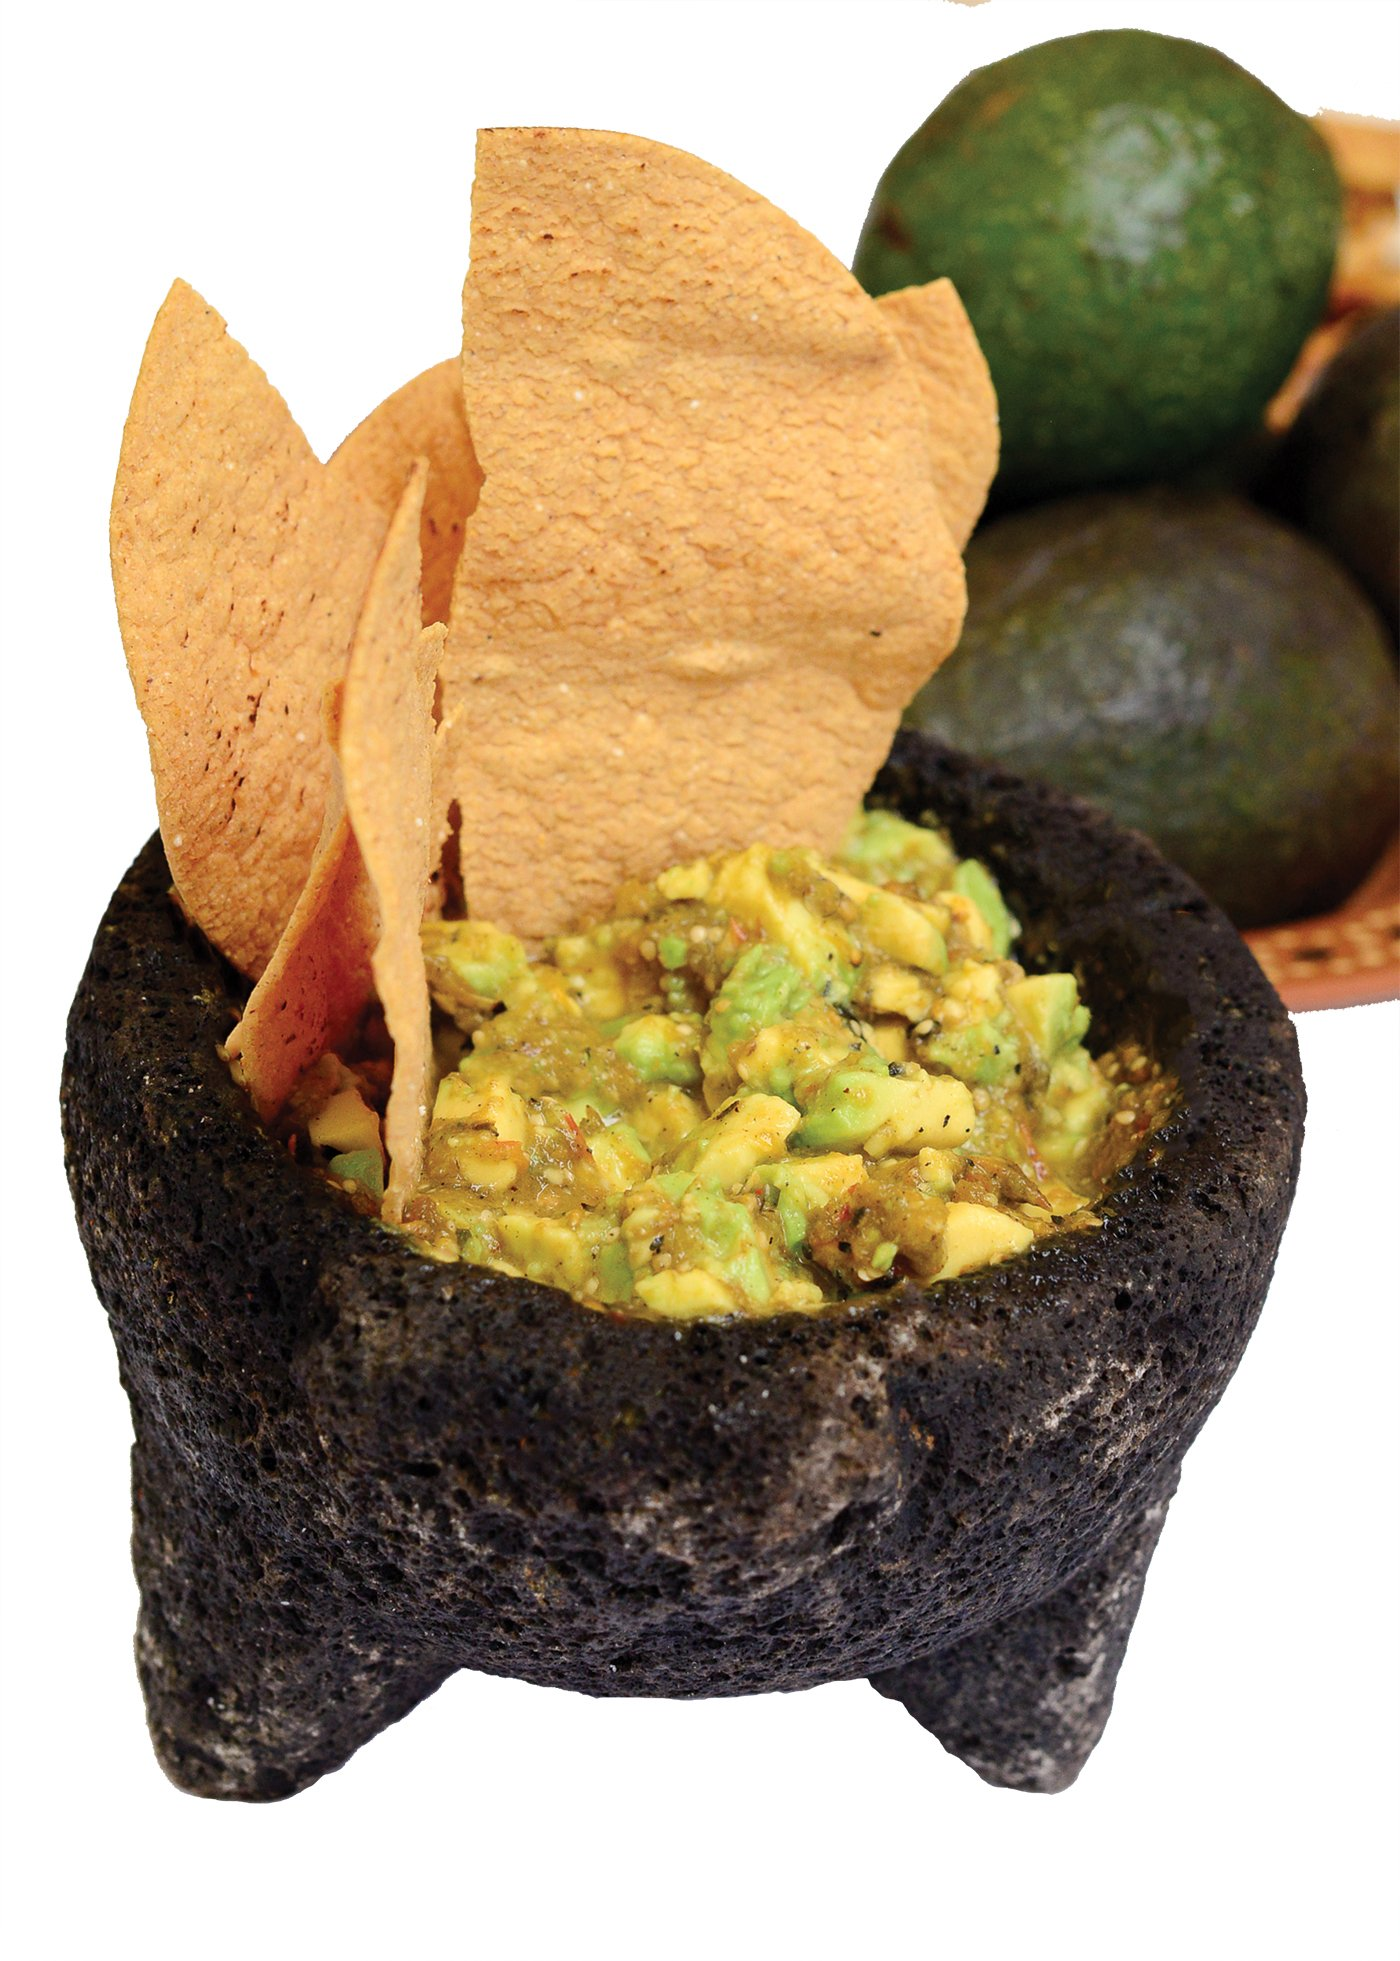 "<span class=""entry-title-primary"">Upping the Avocado Ante</span> <span class=""entry-subtitle"">Avocados from Mexico</span>"